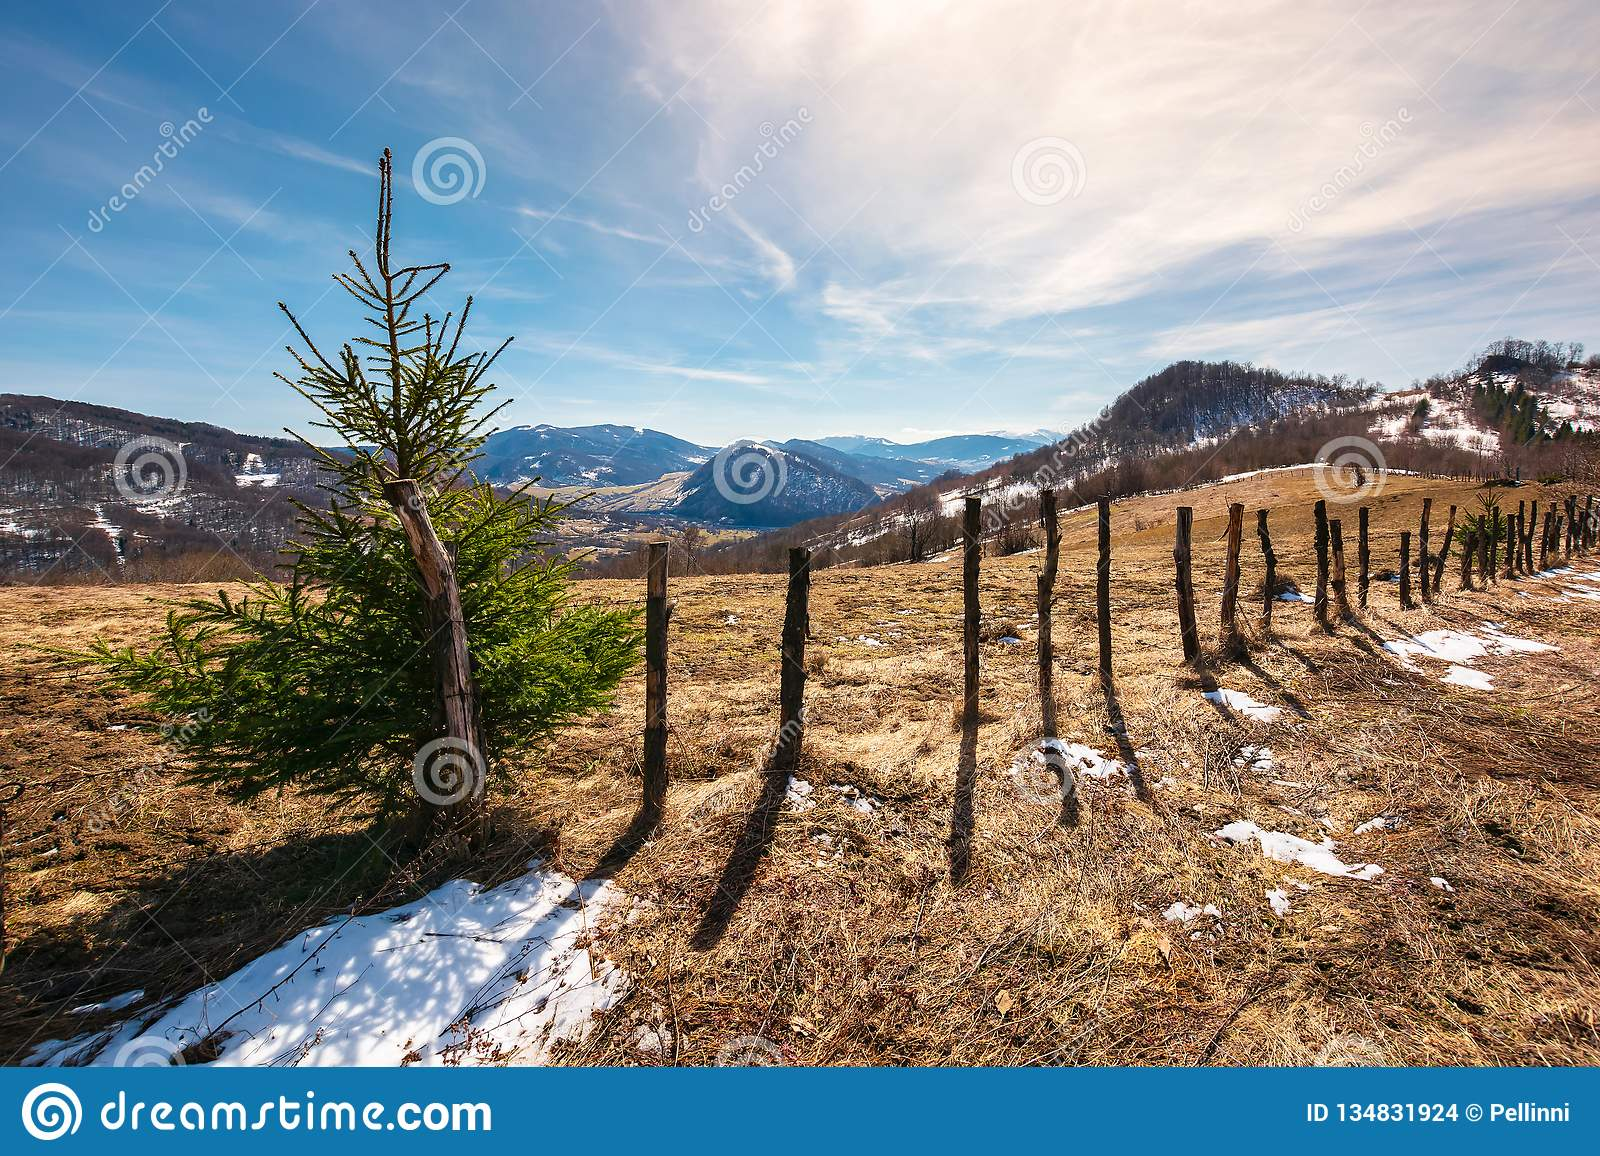 Small spruce tree by the fence on top of a hill